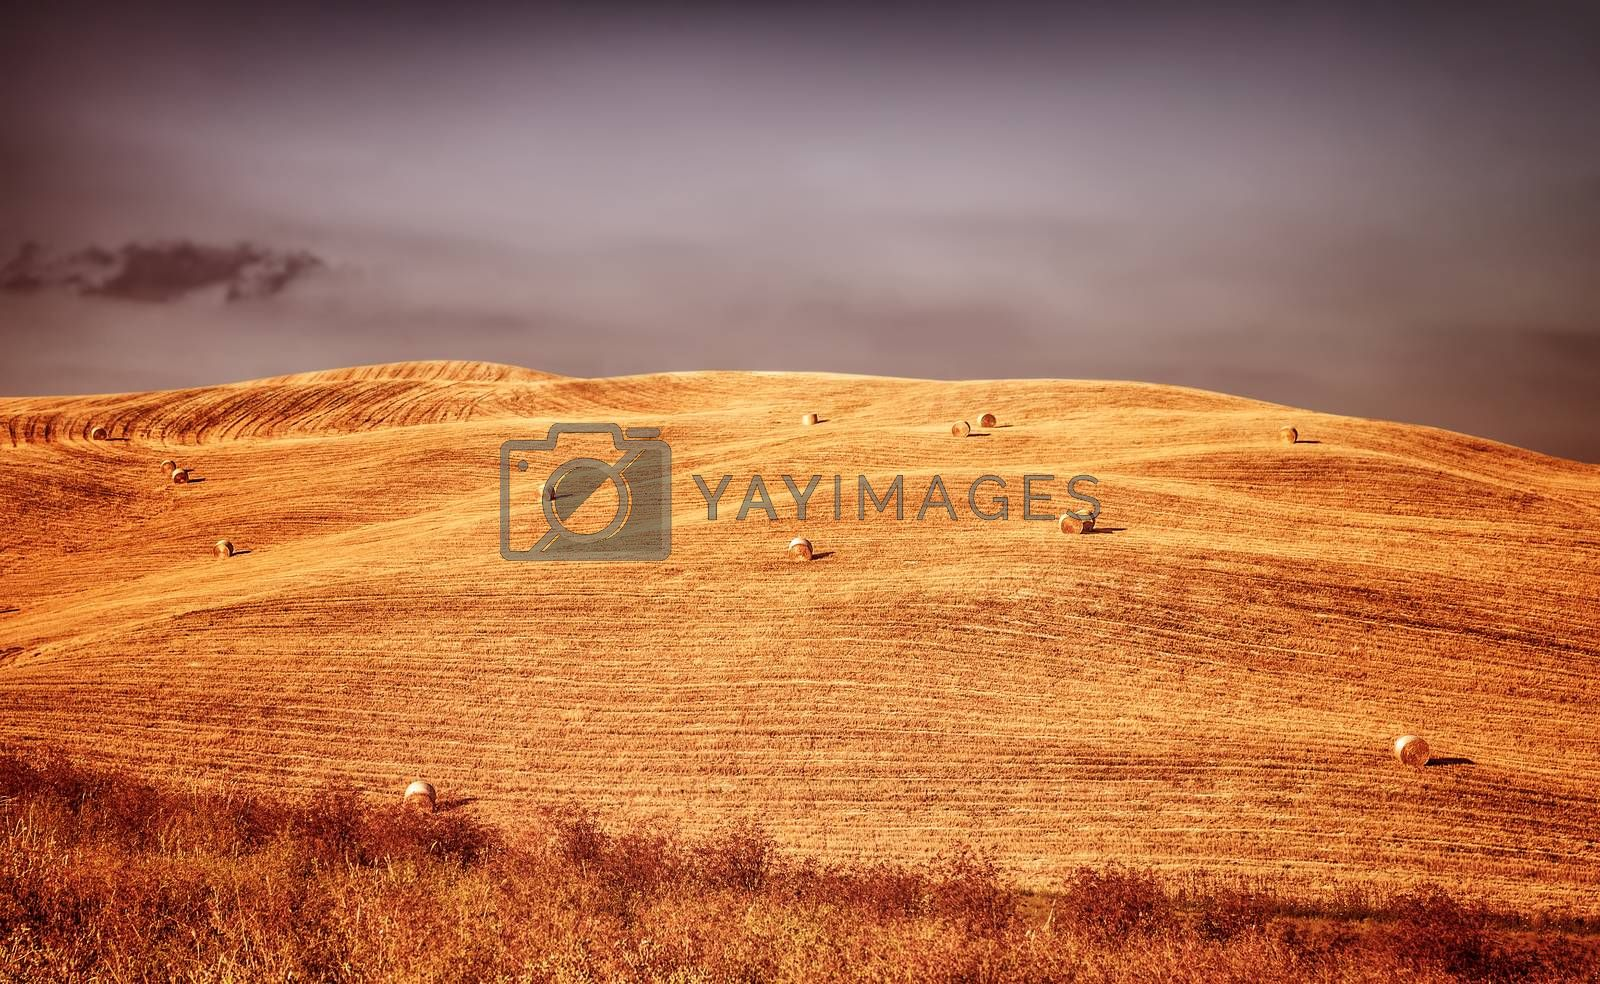 Beautiful autumn landscape, golden dry wheat field with haystack on it, rural agricultural panorama, harvest season concept